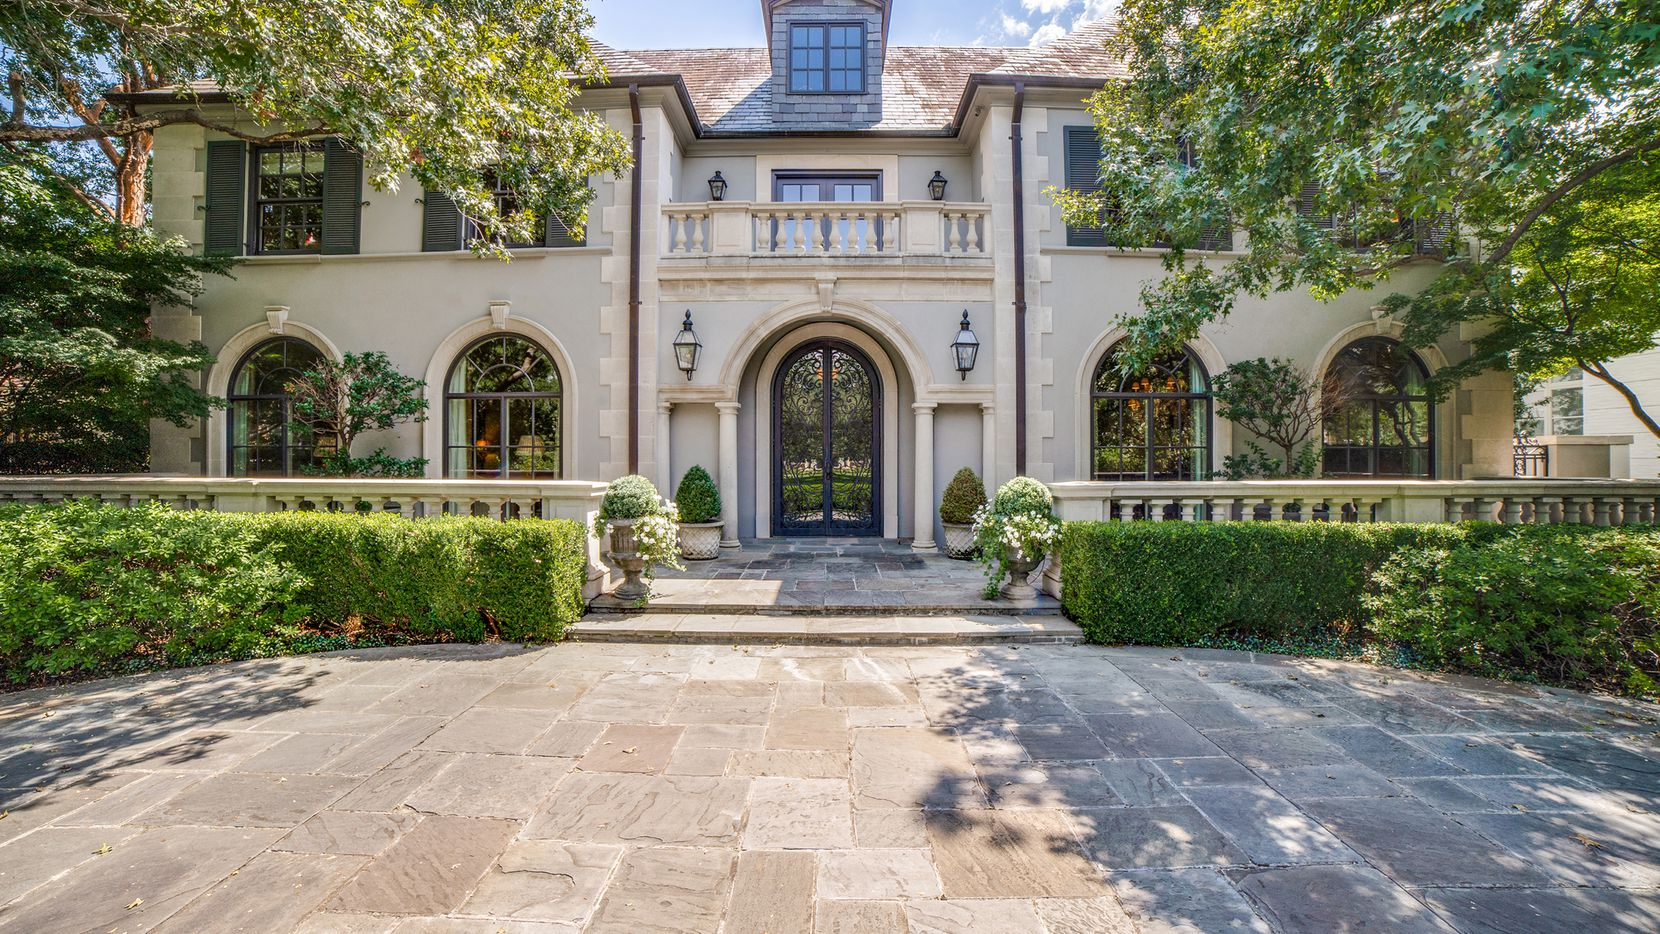 The fast-paced real estate market in DFW should roll into 2022, Allie Beth Allman & Associates agents predict.